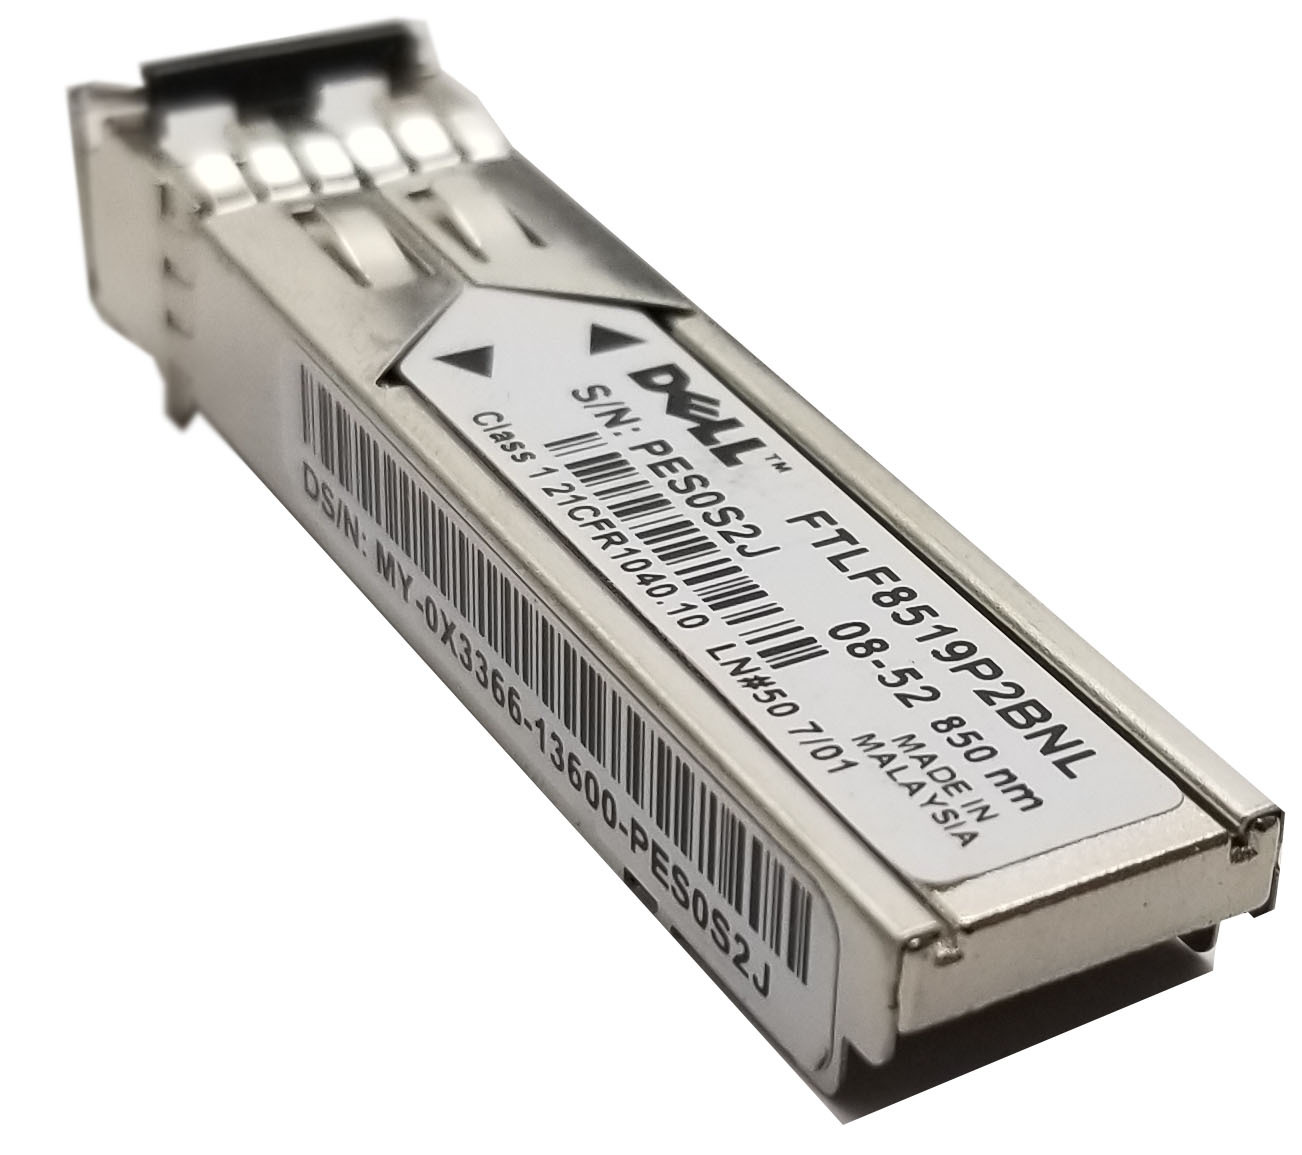 Dell PowerConnect SFP 1000base-SX FTLF8519P2BNL 850nm GF76J Bin:8